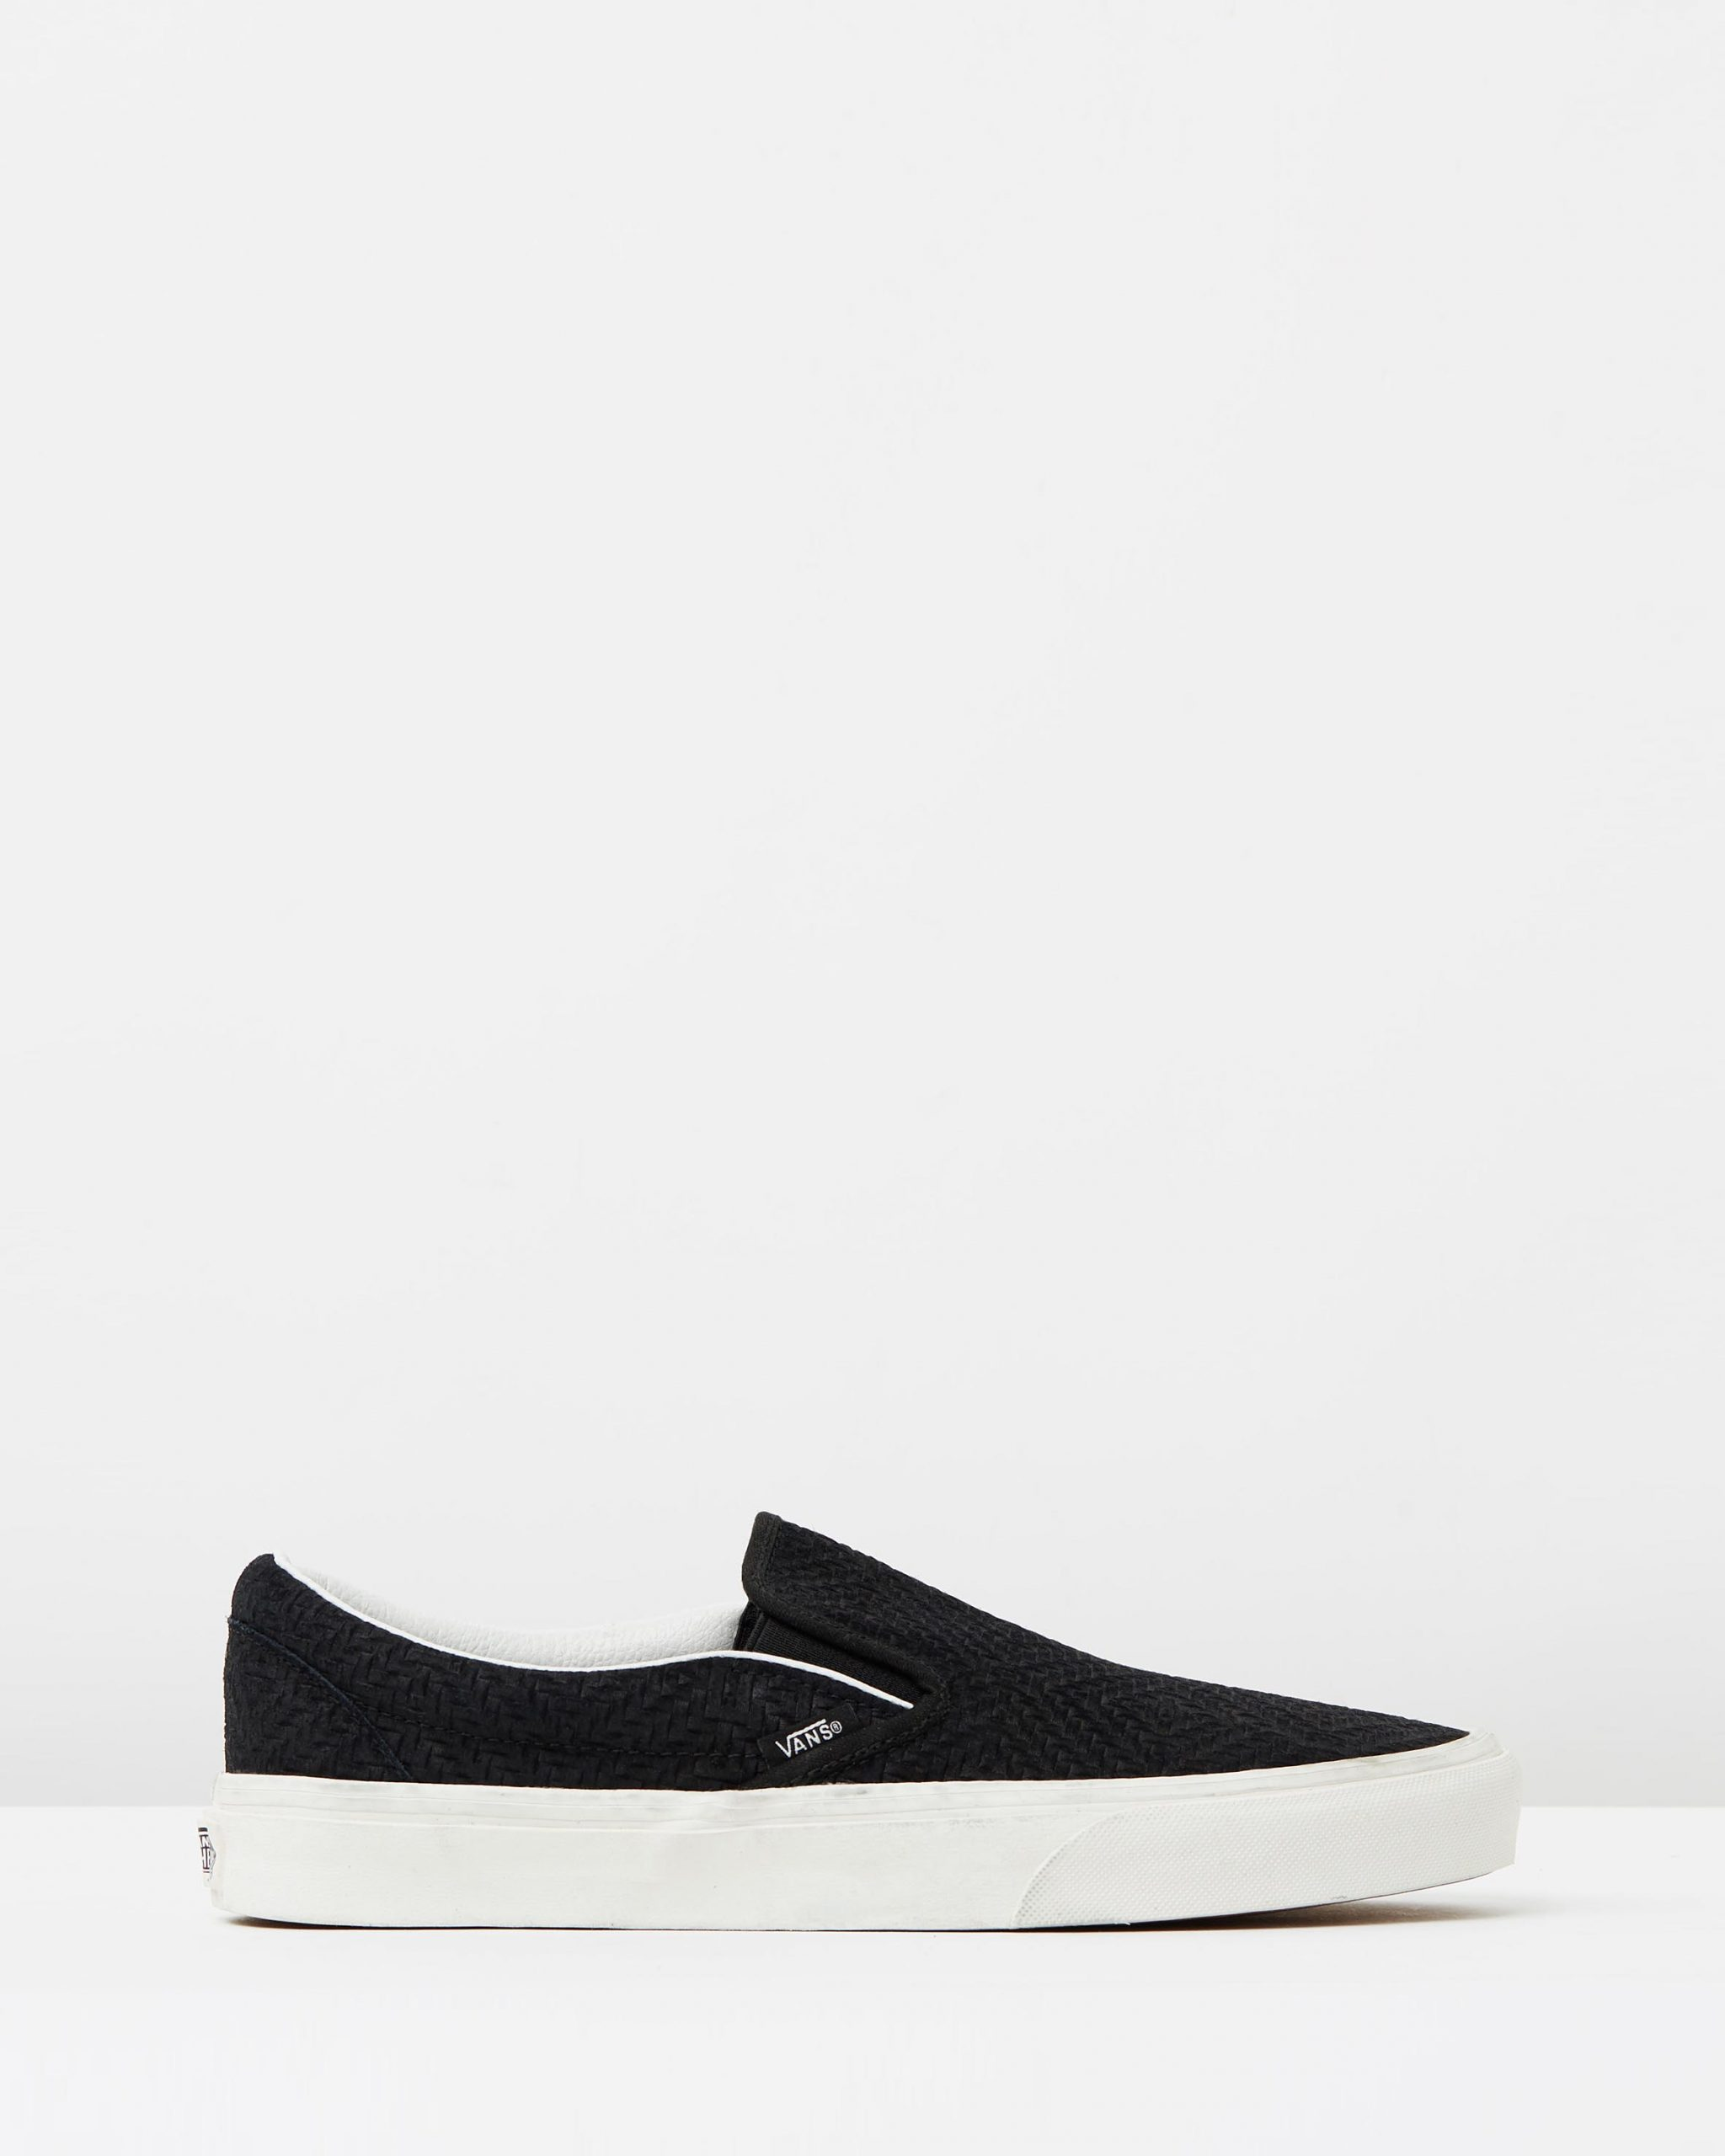 Vans Womens Classic Slip-On Black Suede Trainers